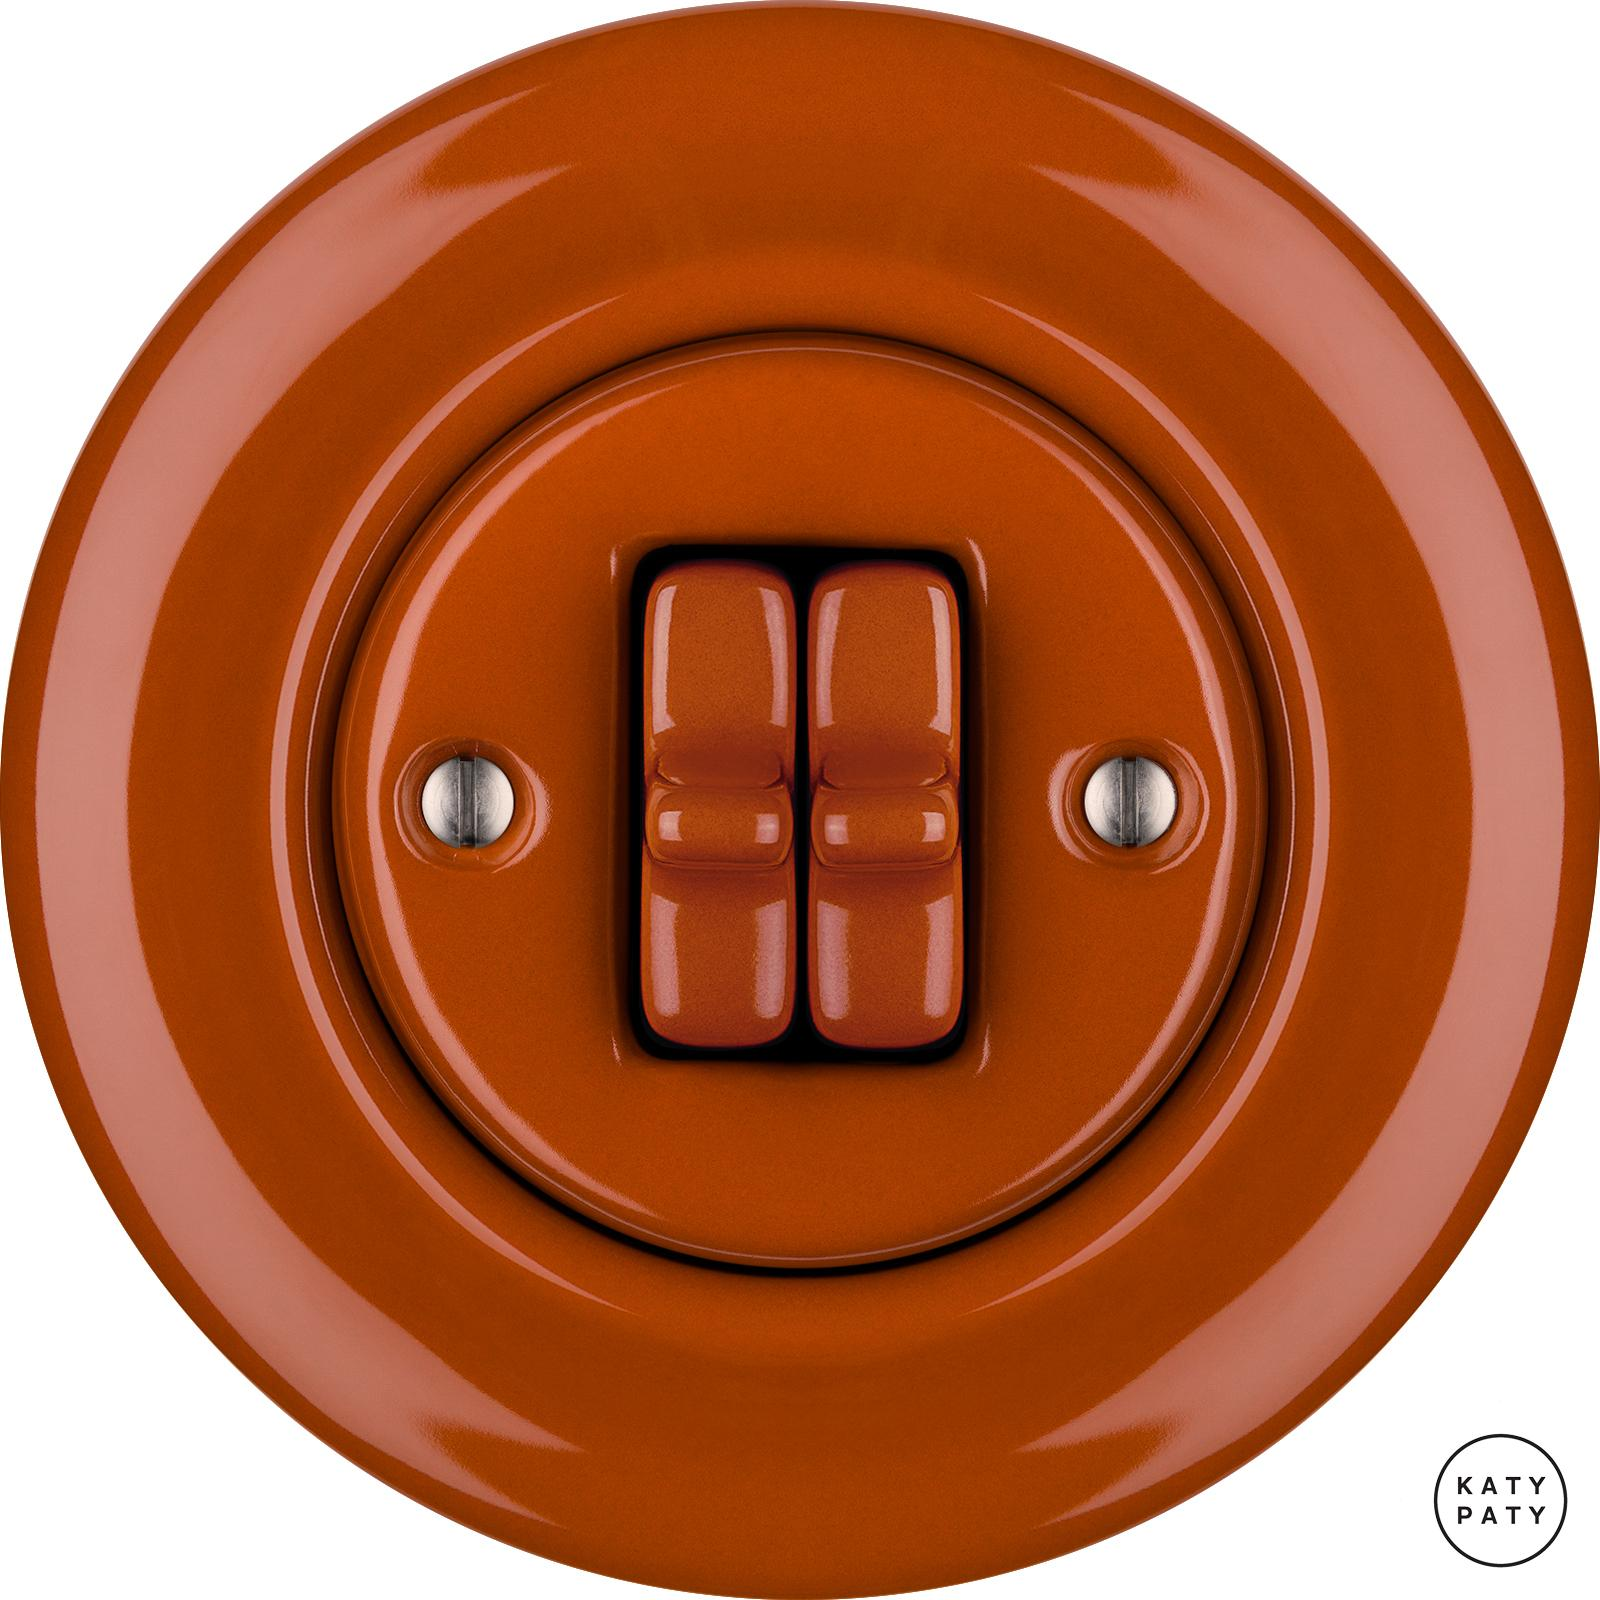 Porcelain toggle switches - a 2 gang ()  - AURANTIA | Katy Paty